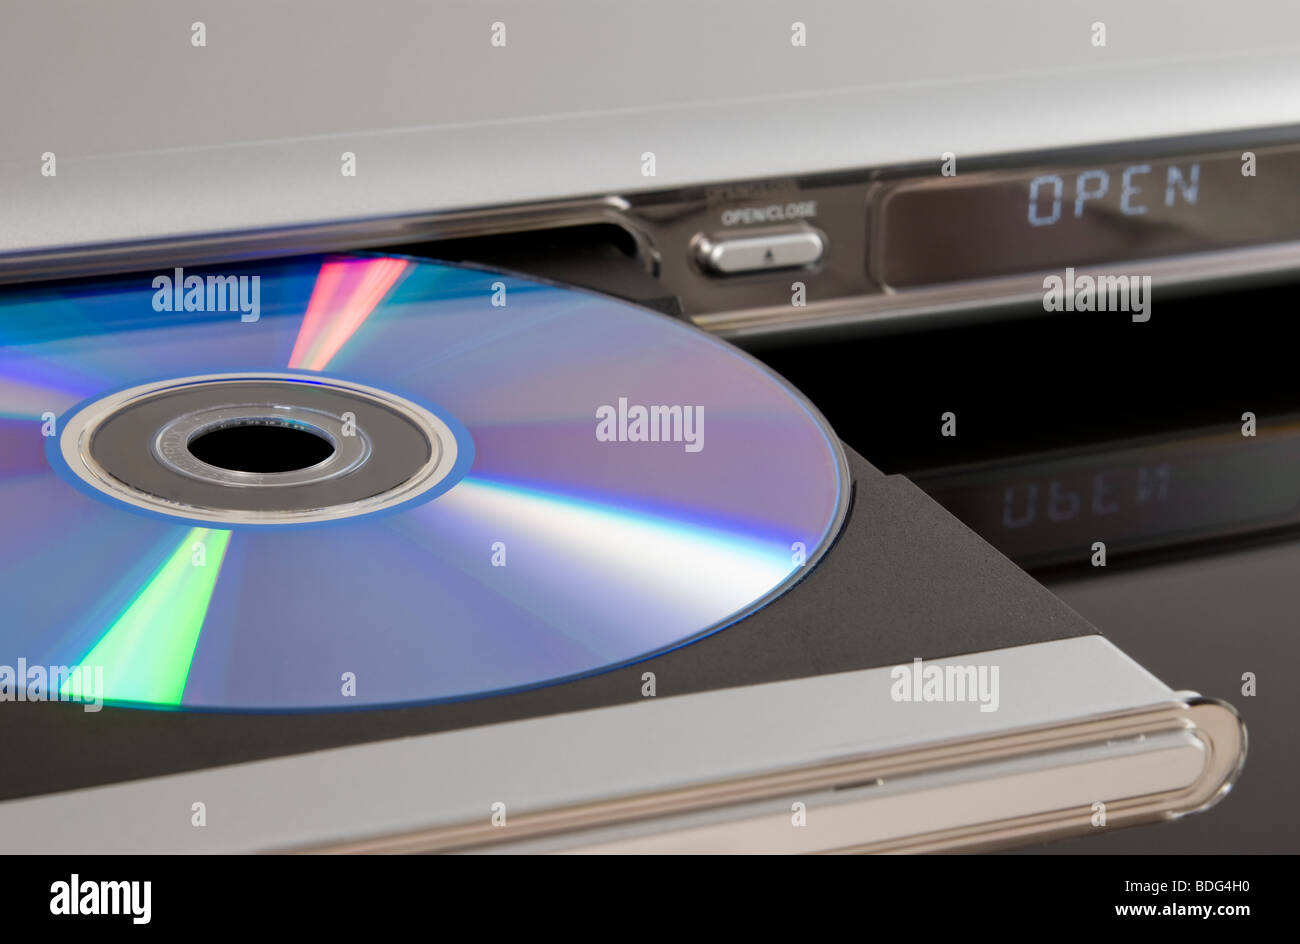 DVD disc inserted in DVD player disc tray isolated on black background - Stock Image